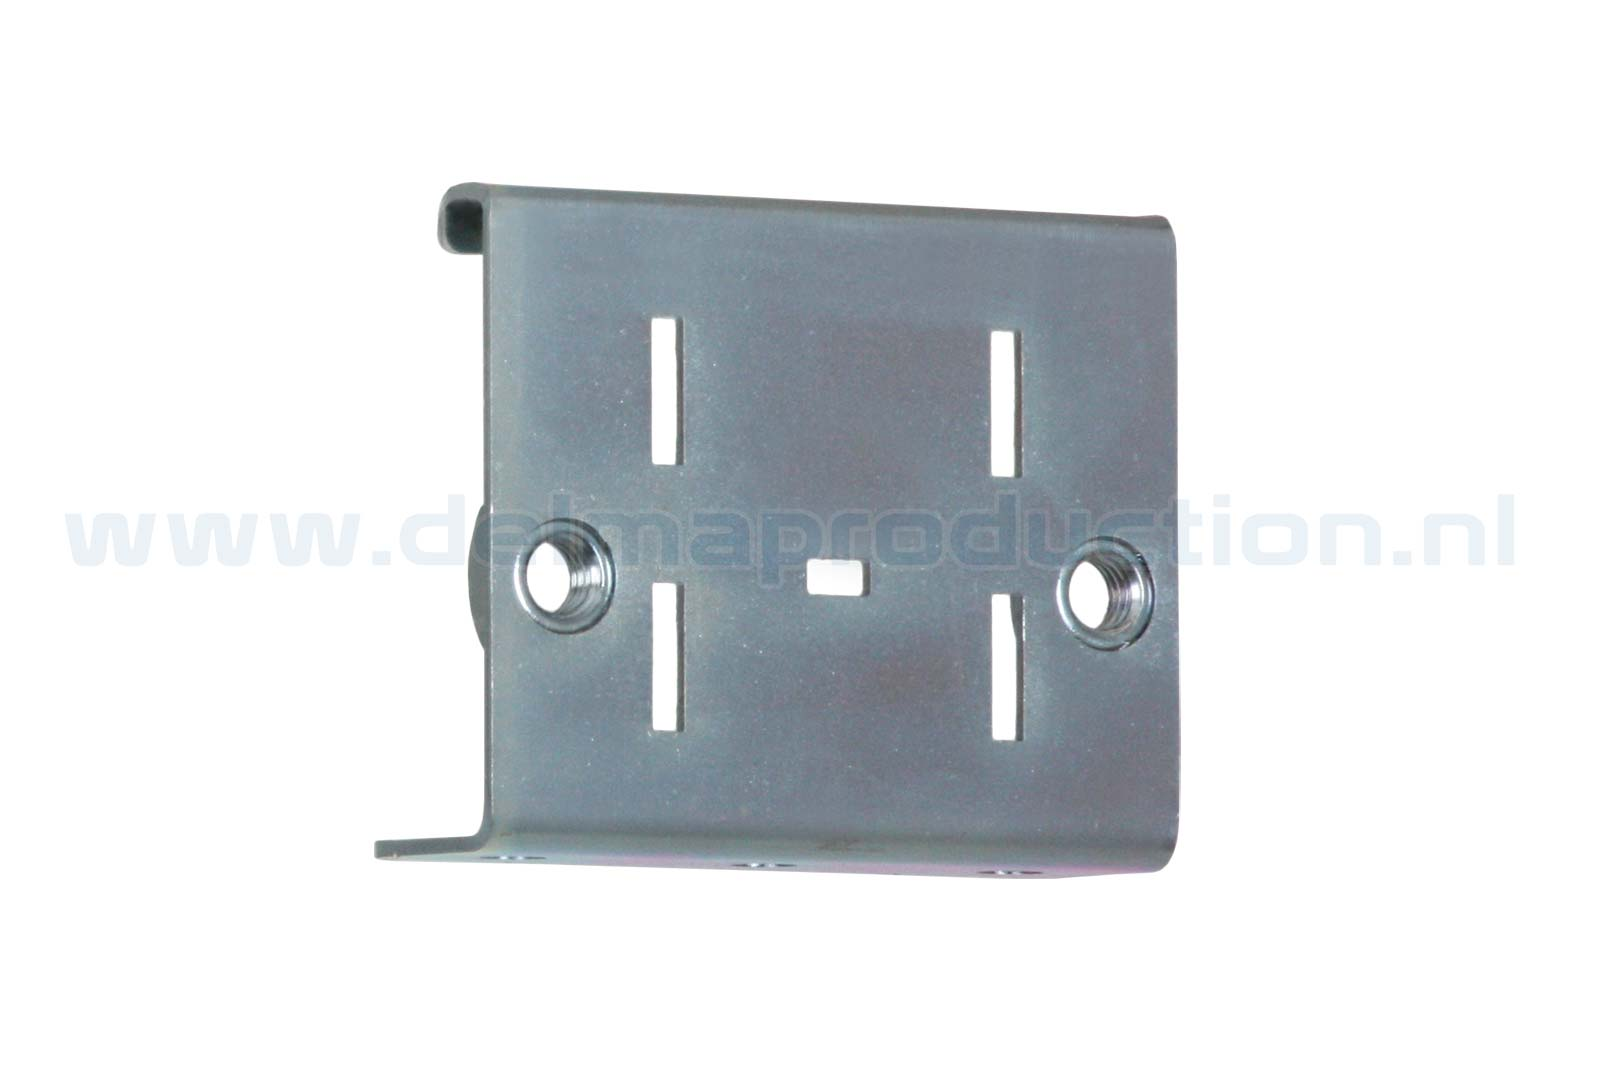 OPUS Quick release mounting plate (1)